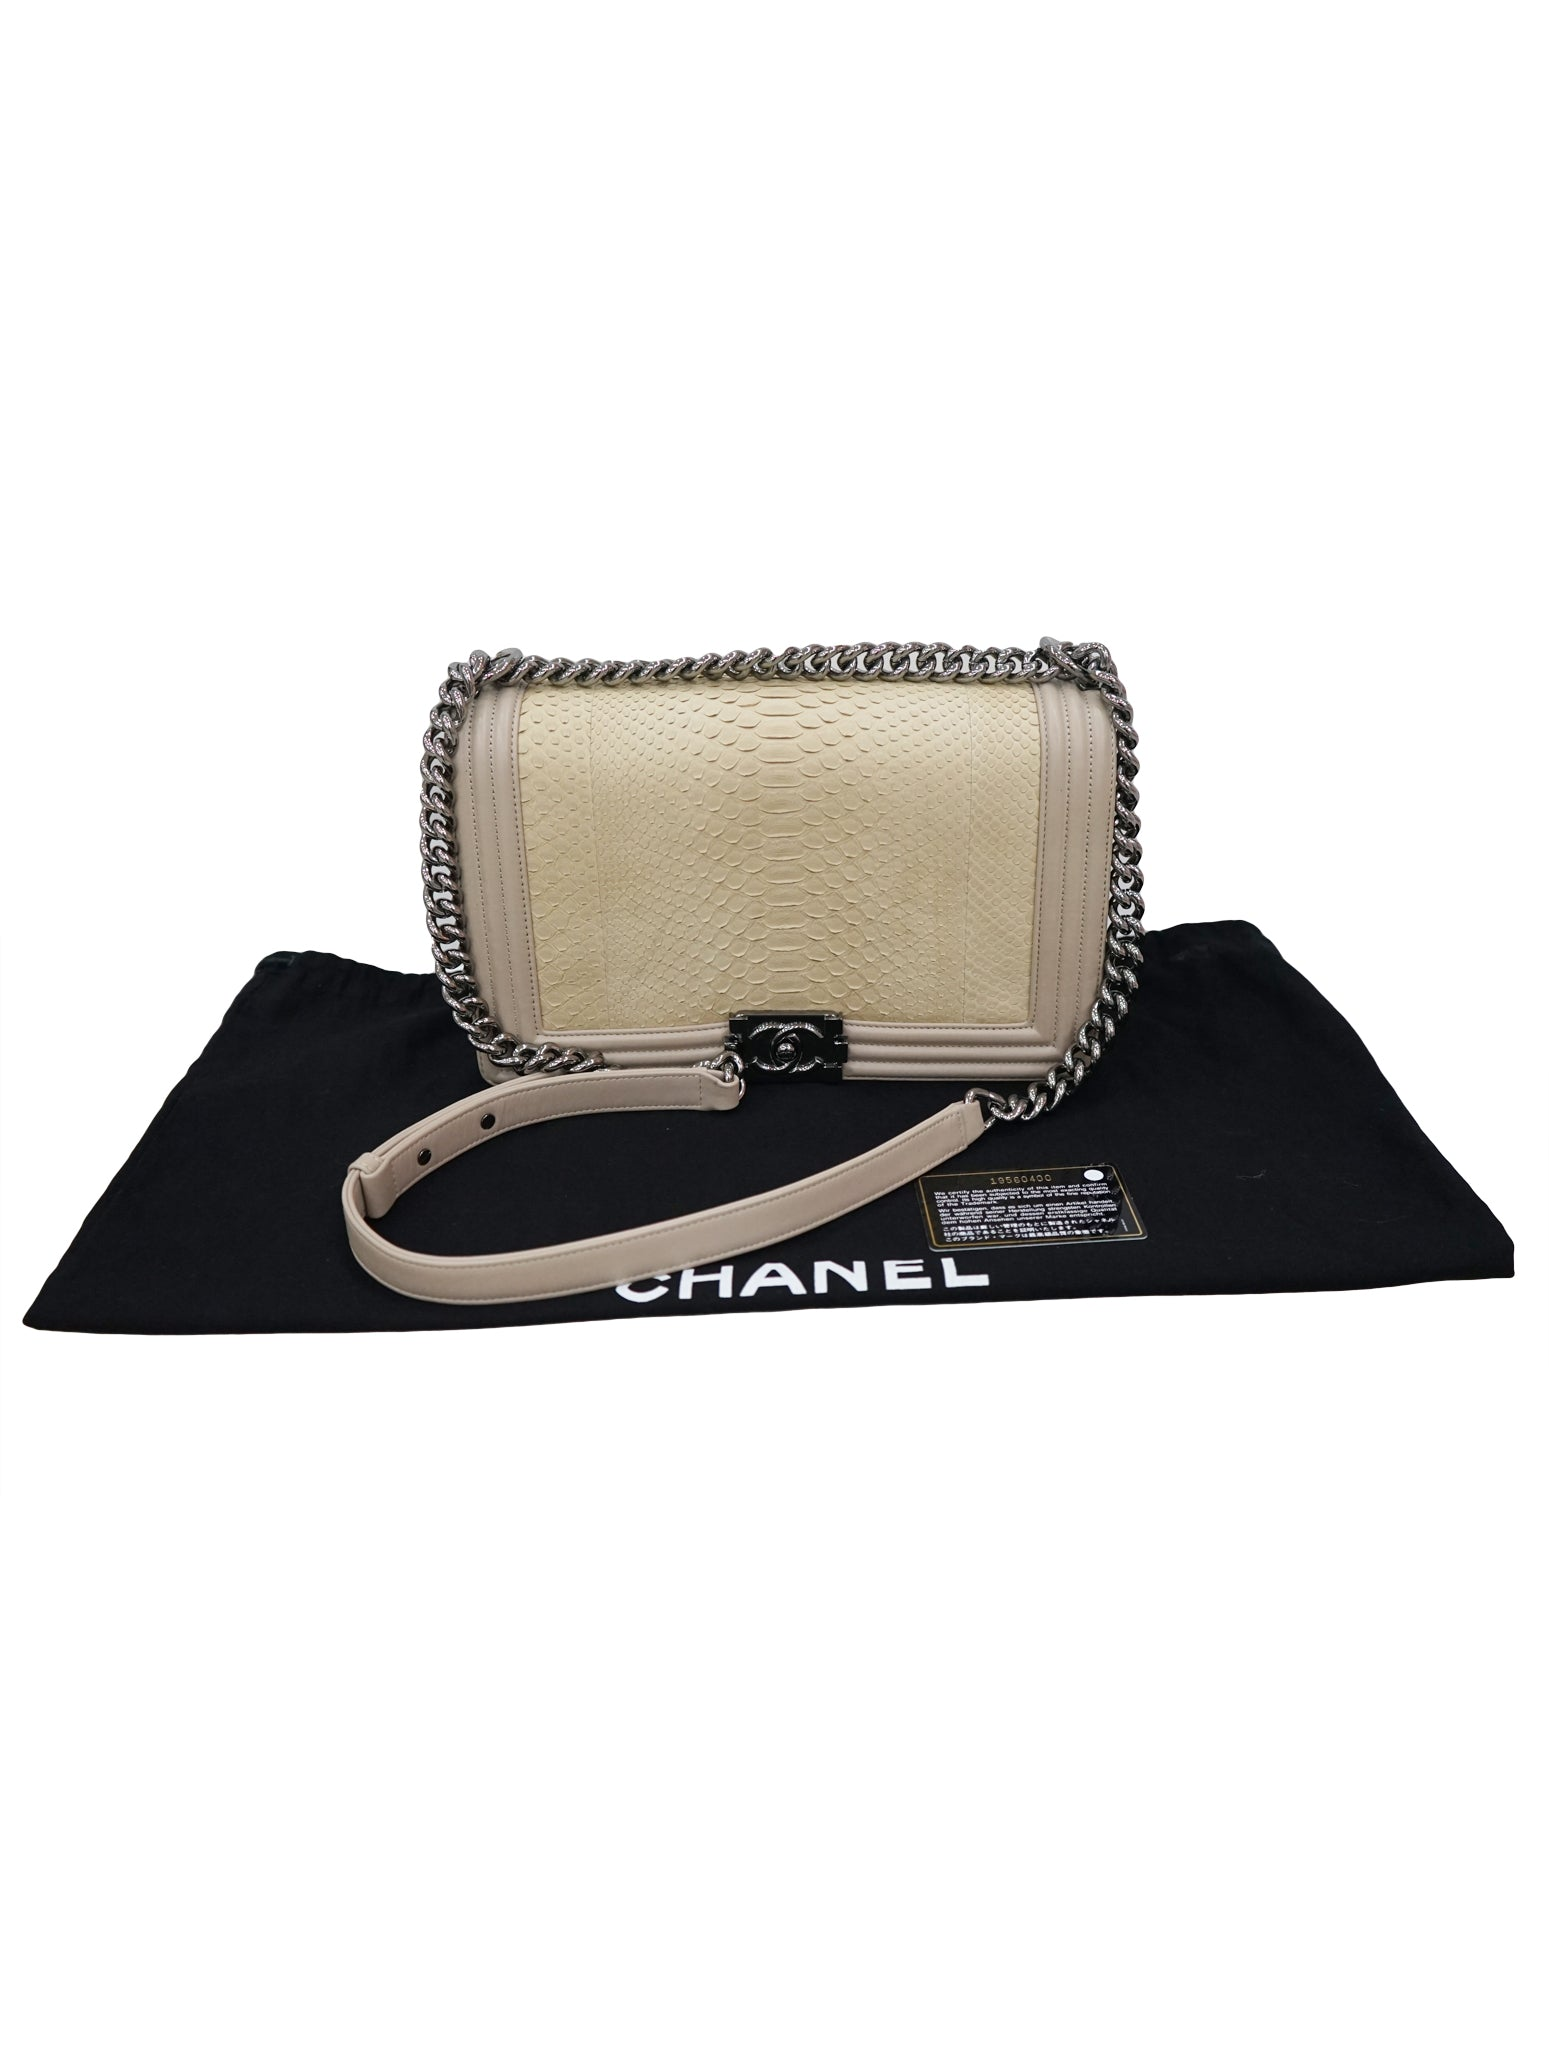 57a0e1a3ce2a CHANEL CHAMPAGNE PYTHON MEDIUM BOY BAG – Kidsstyleforless